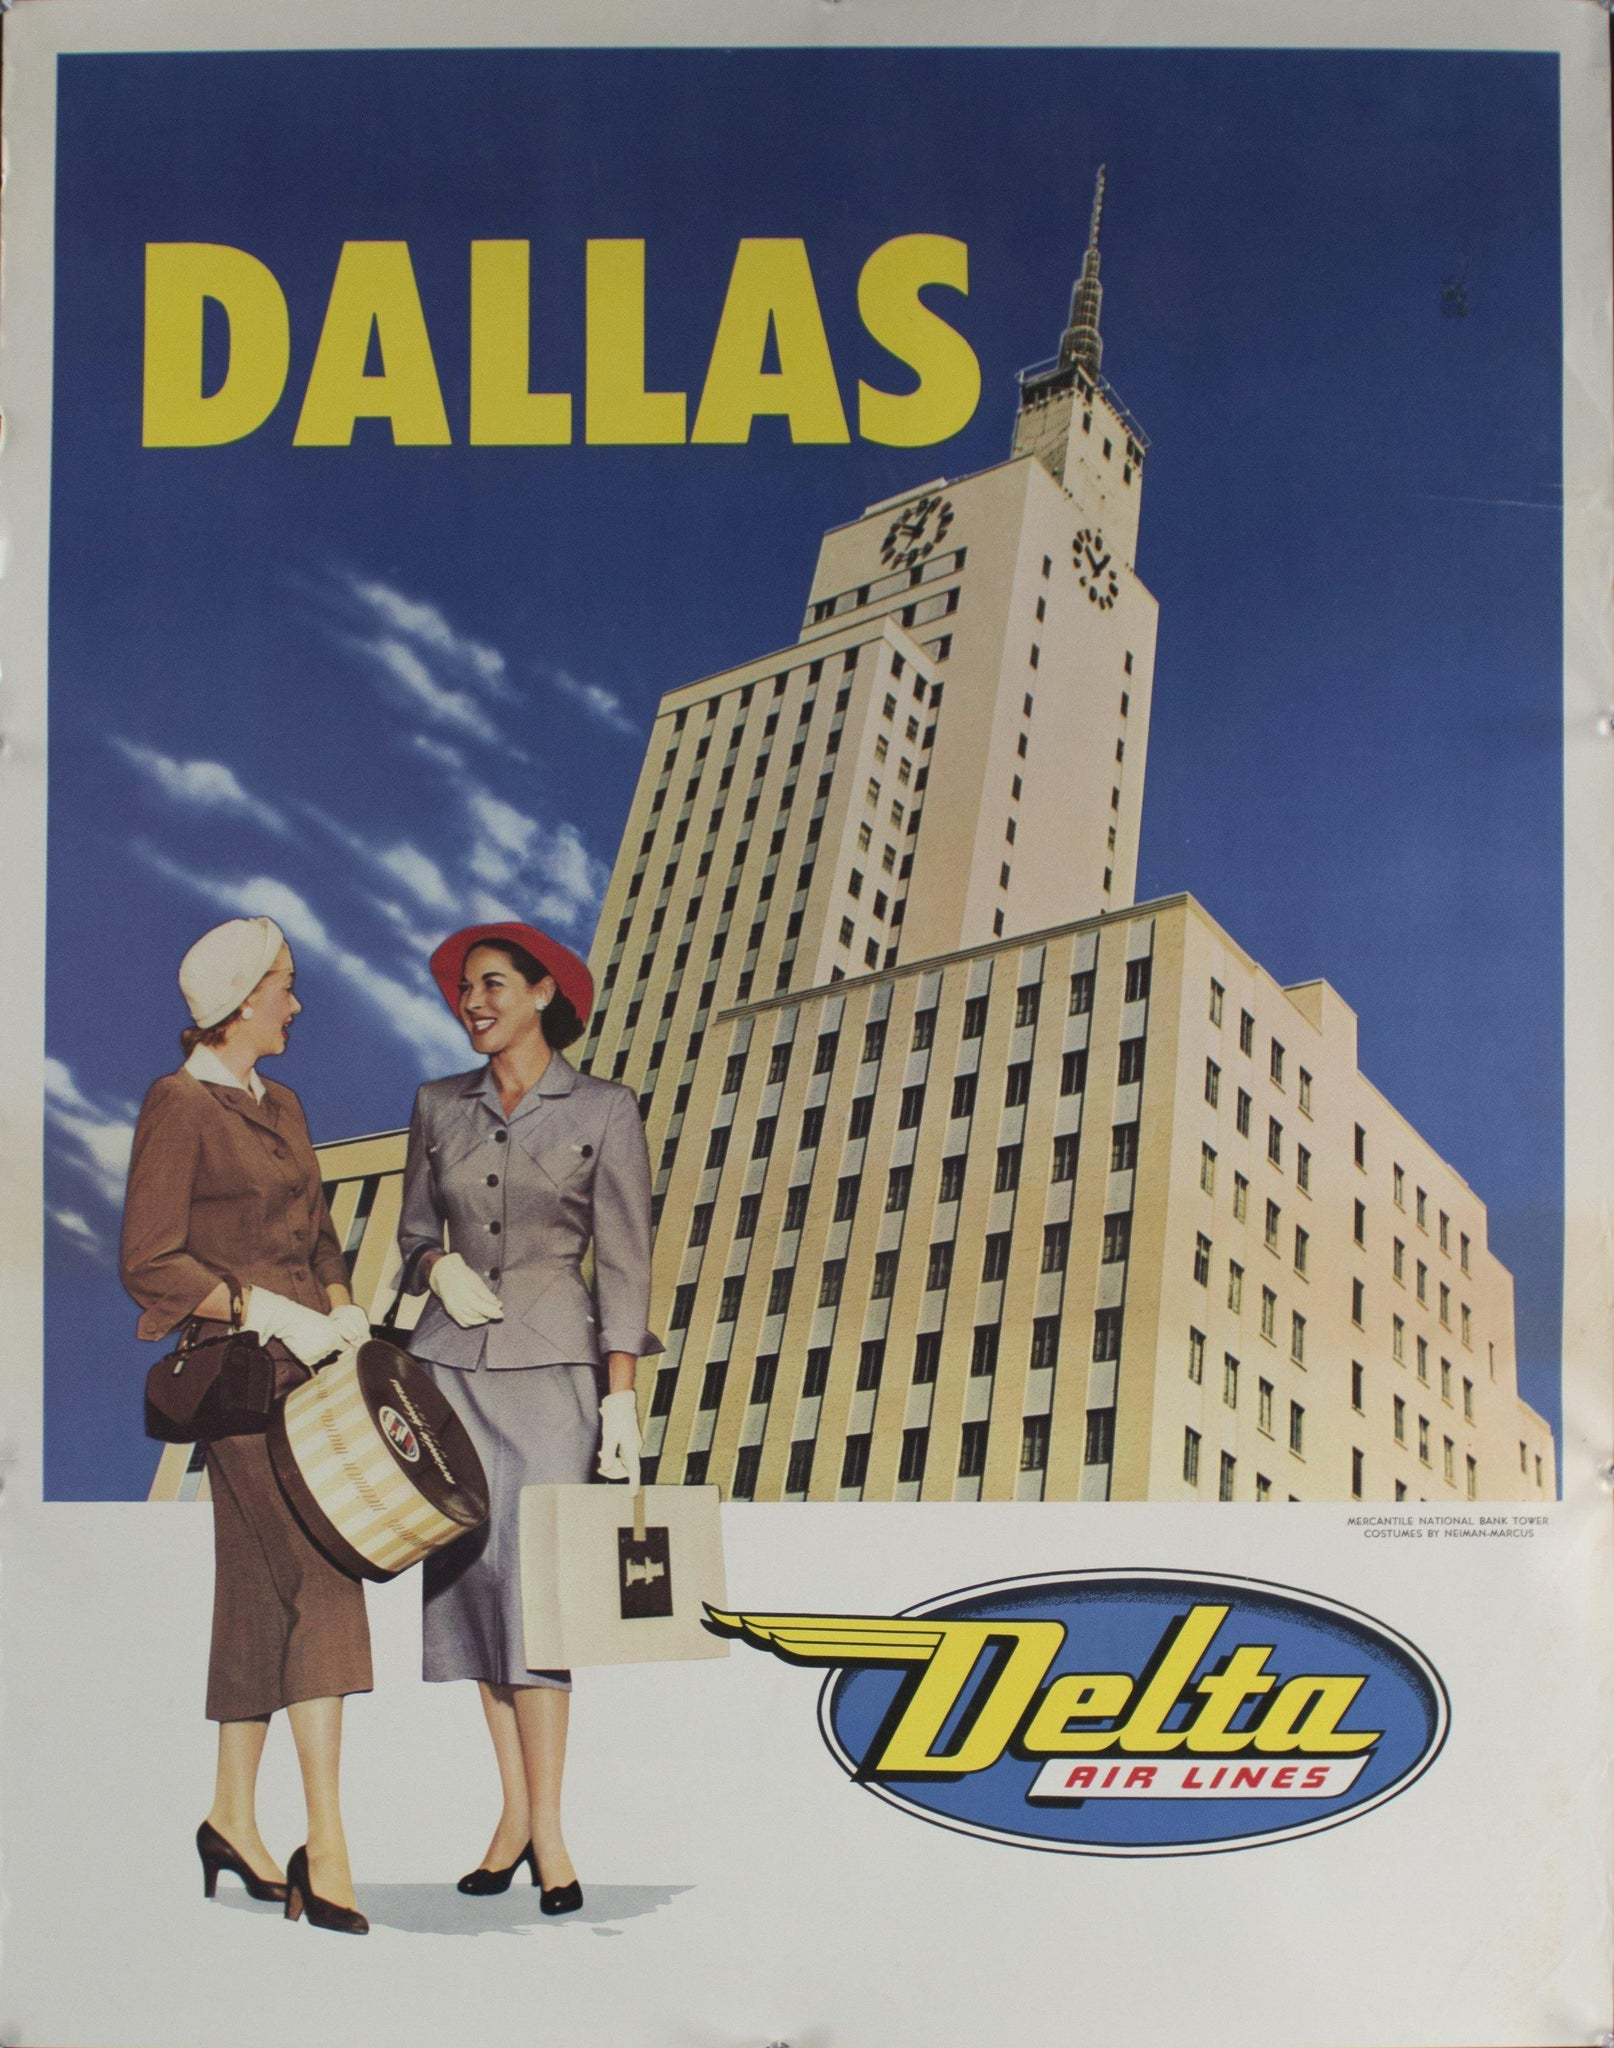 c. 1950 Dallas | Delta Air Lines | Mercantile National Bank Tower